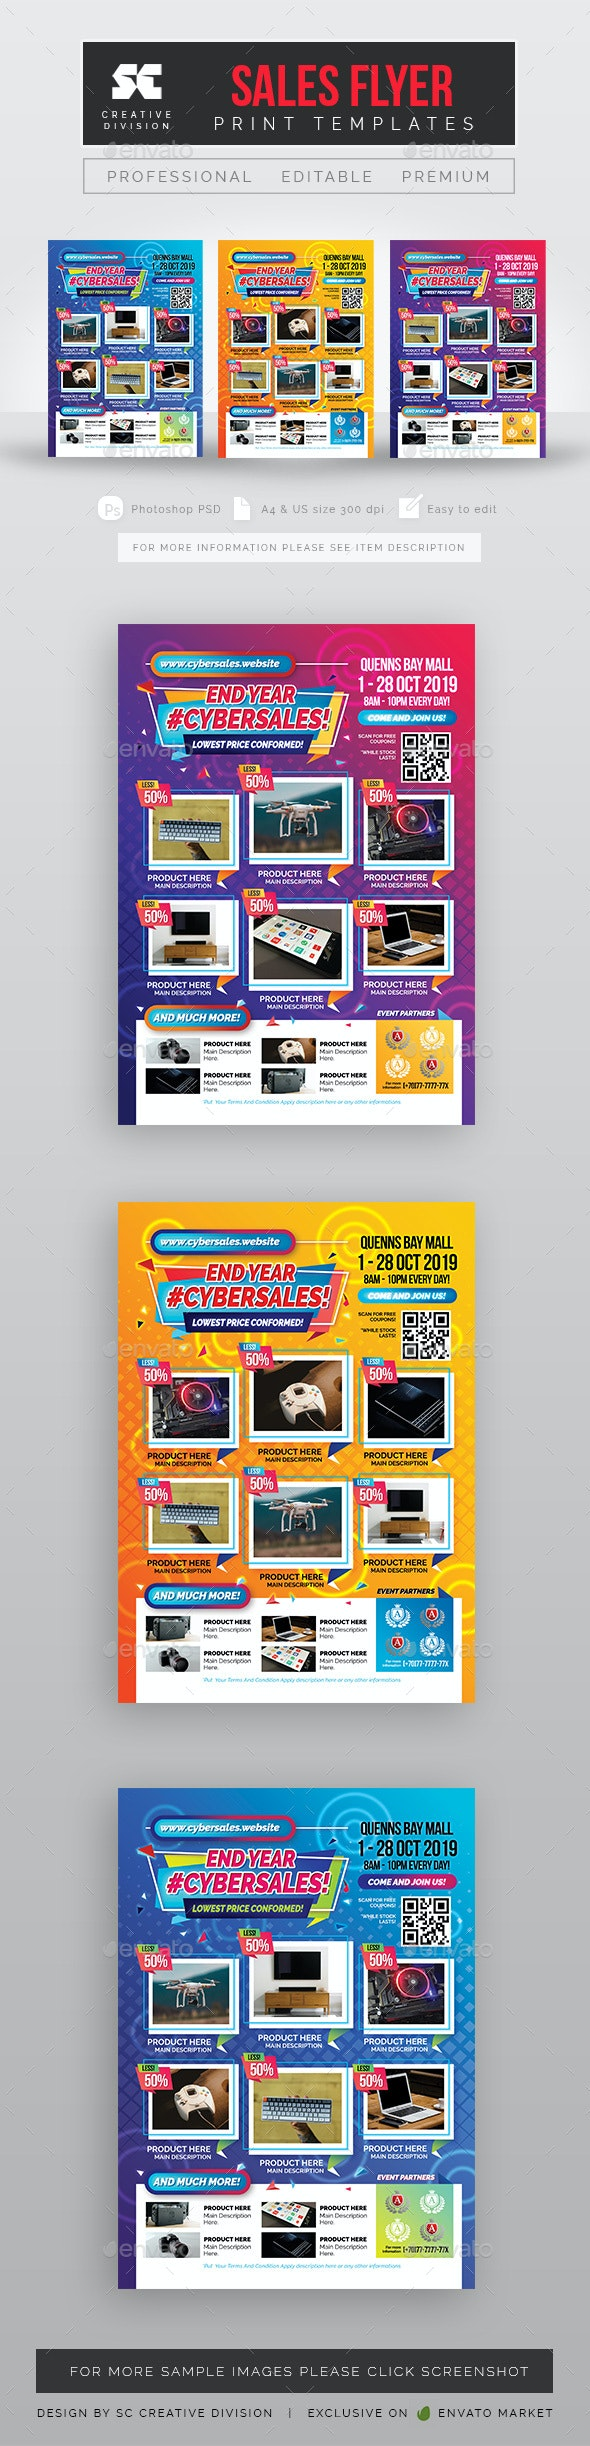 Sales Flyer - Commerce Flyers